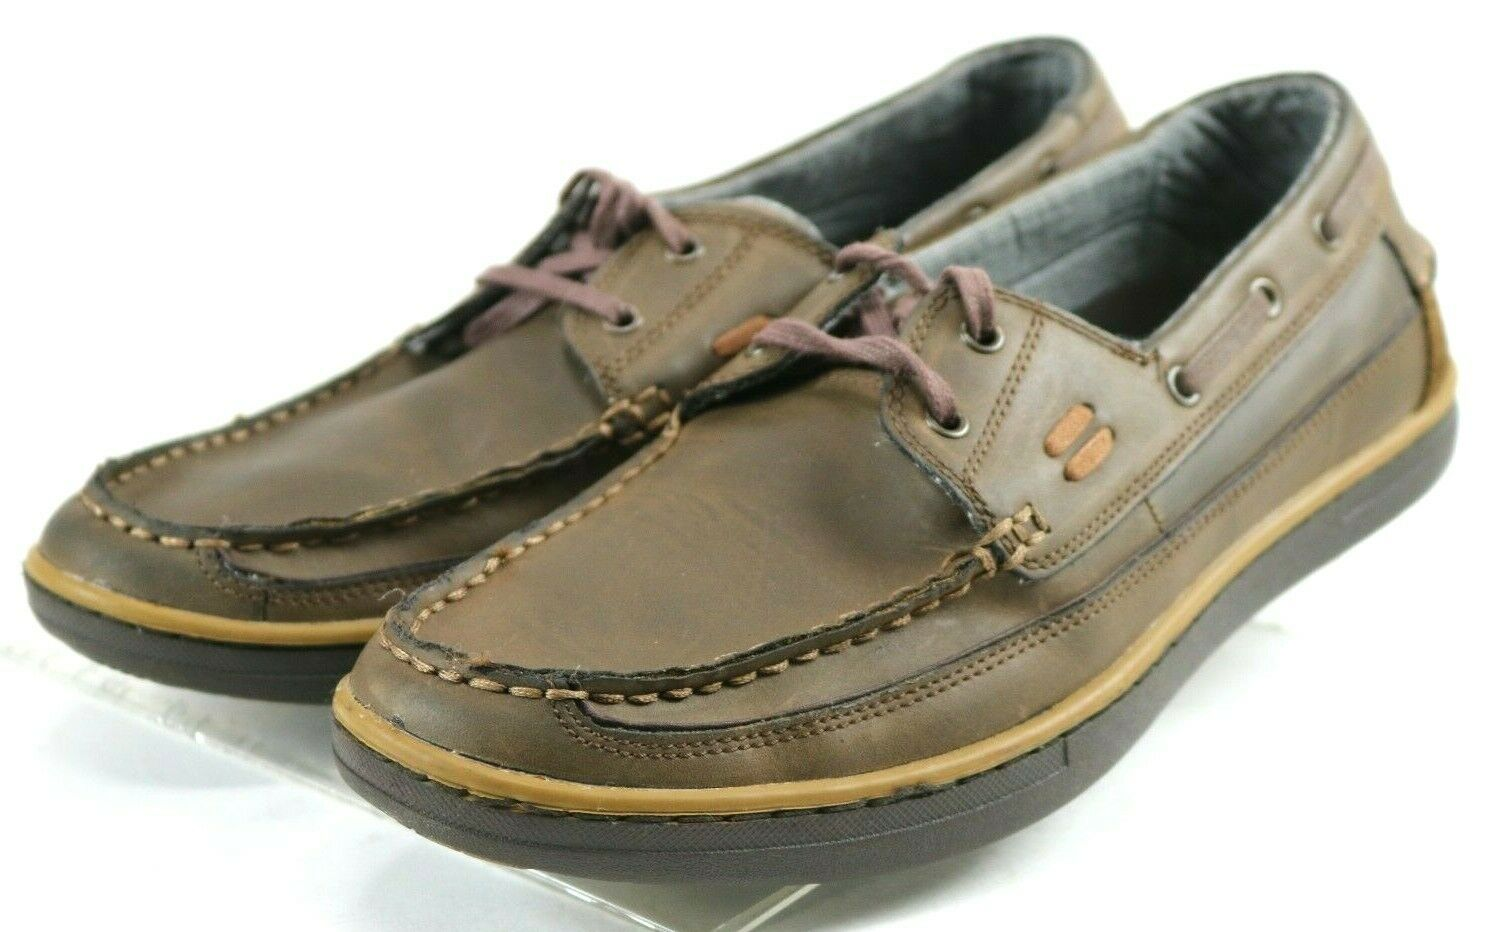 Skechers Sereno Latted  Men's Boat shoes Size 10 Leather Brown